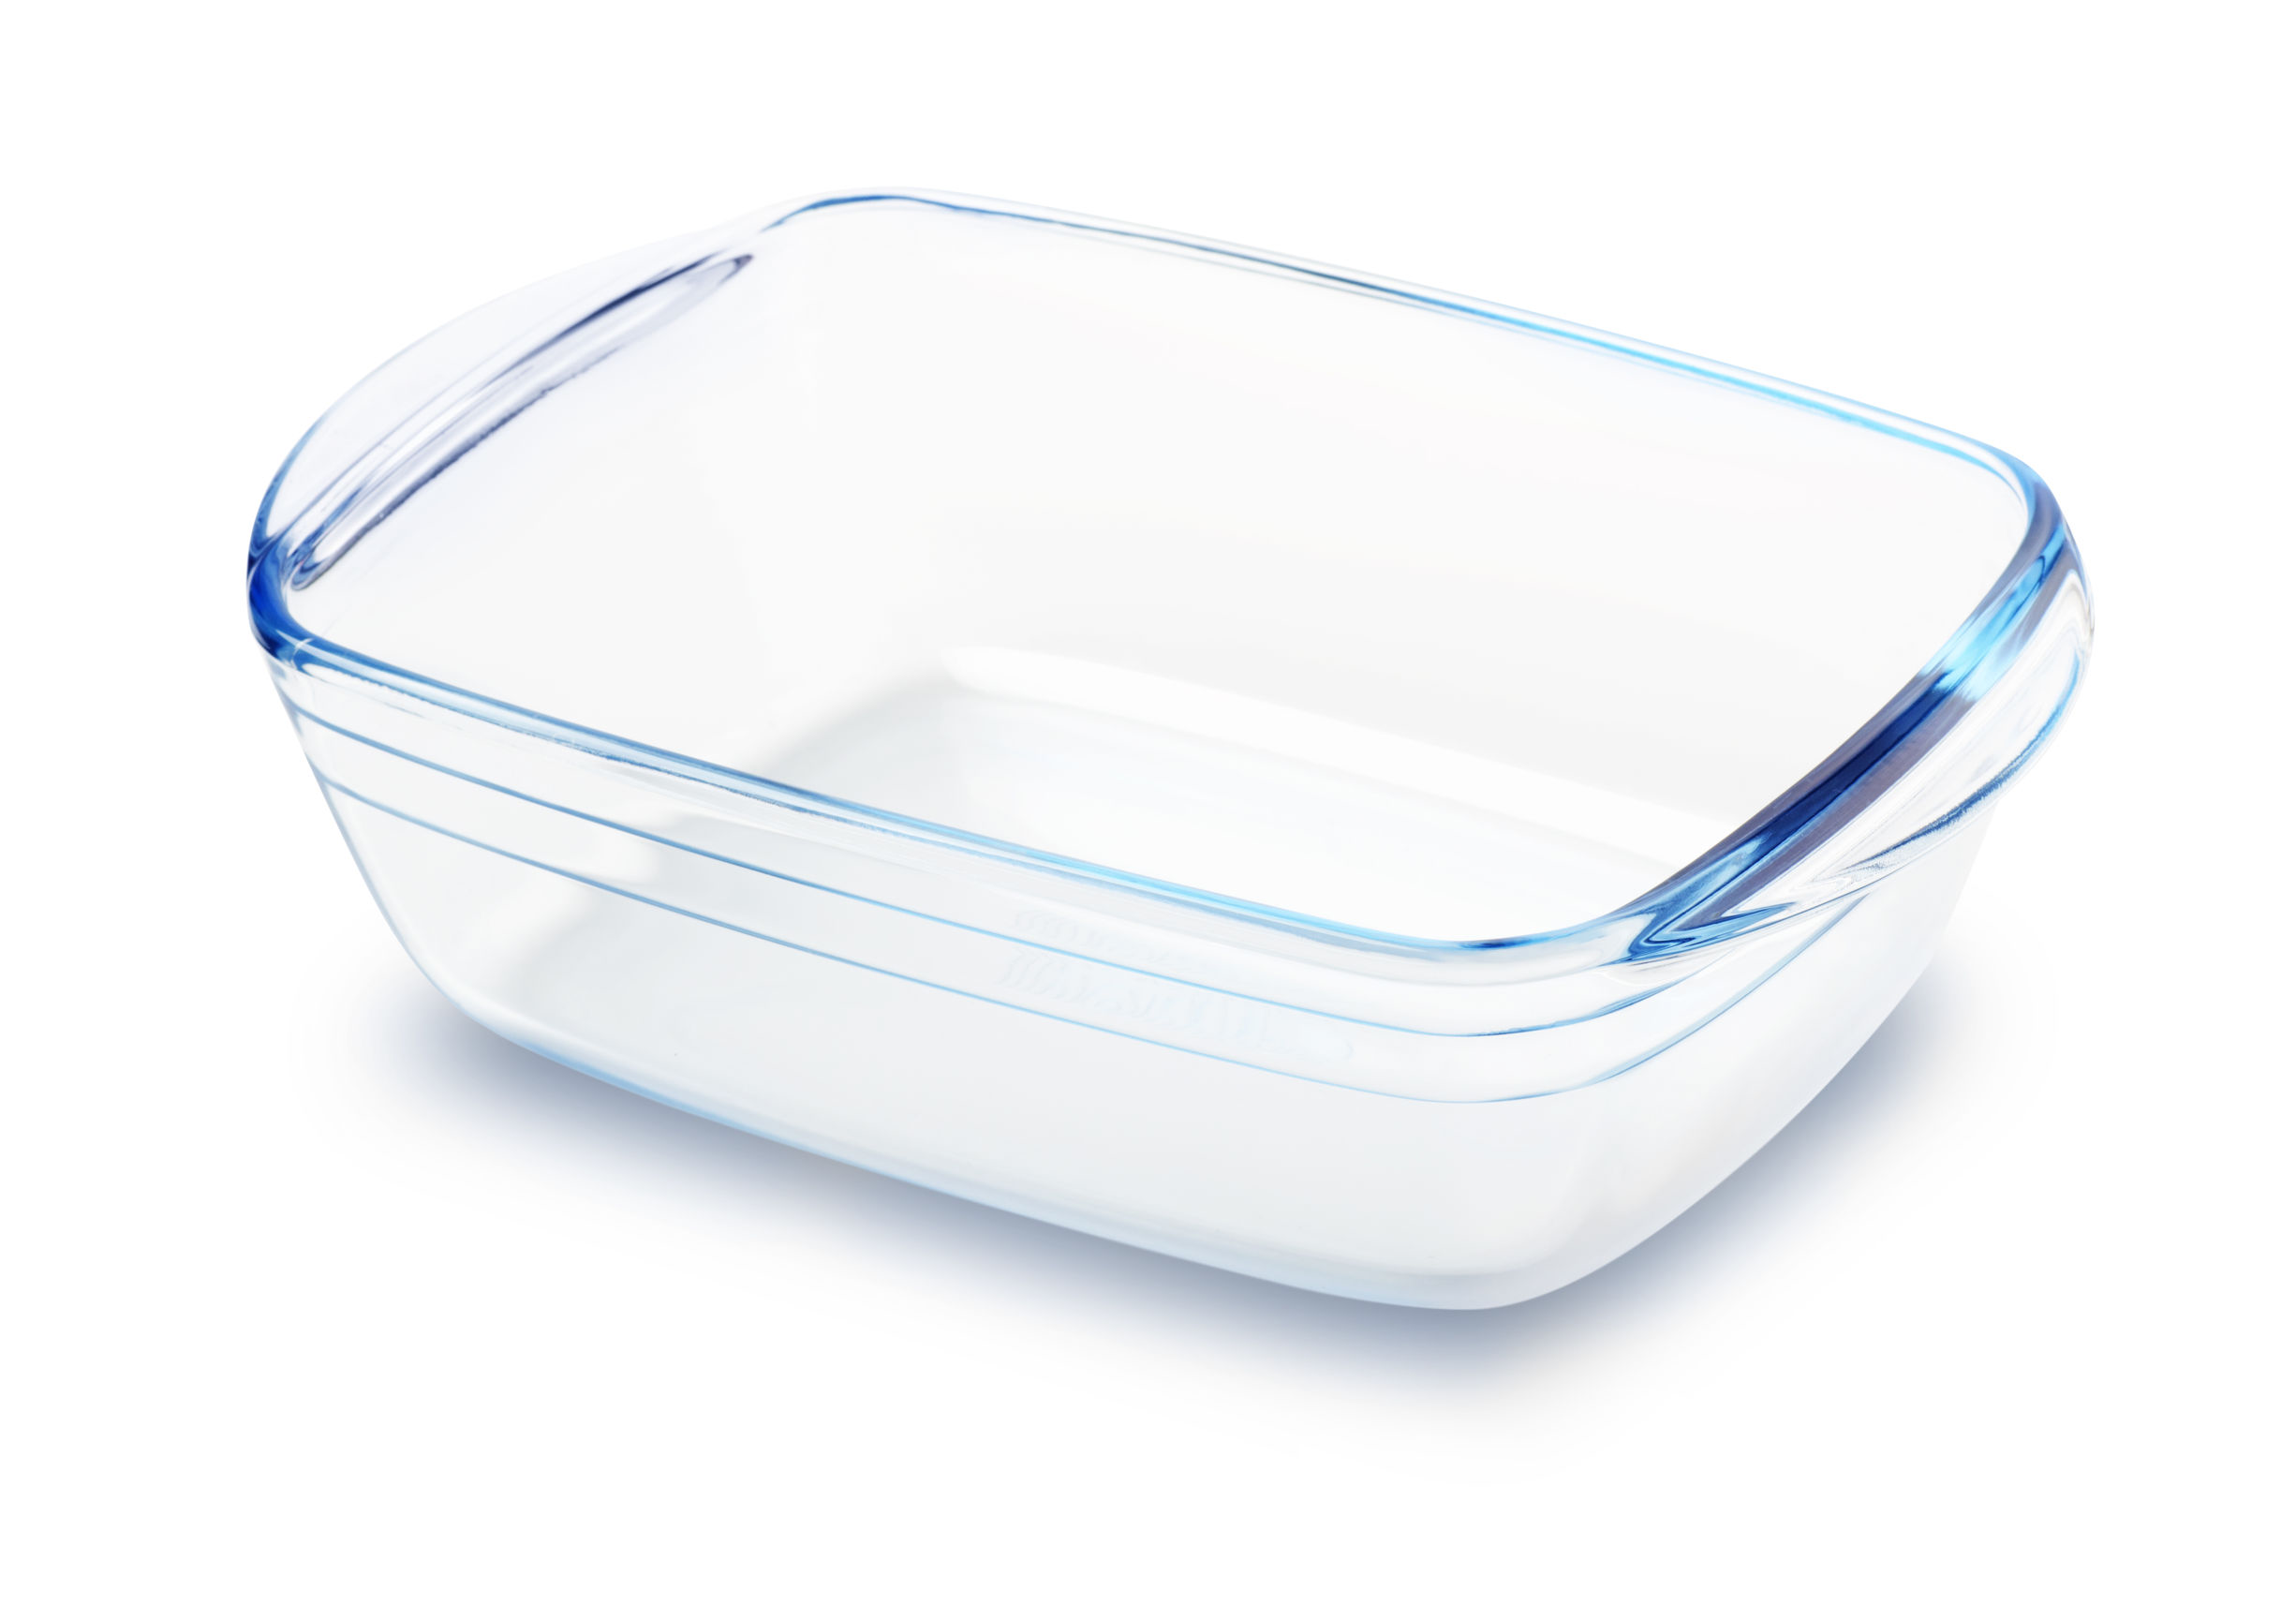 a sparkling clean rectangular glass baking dish